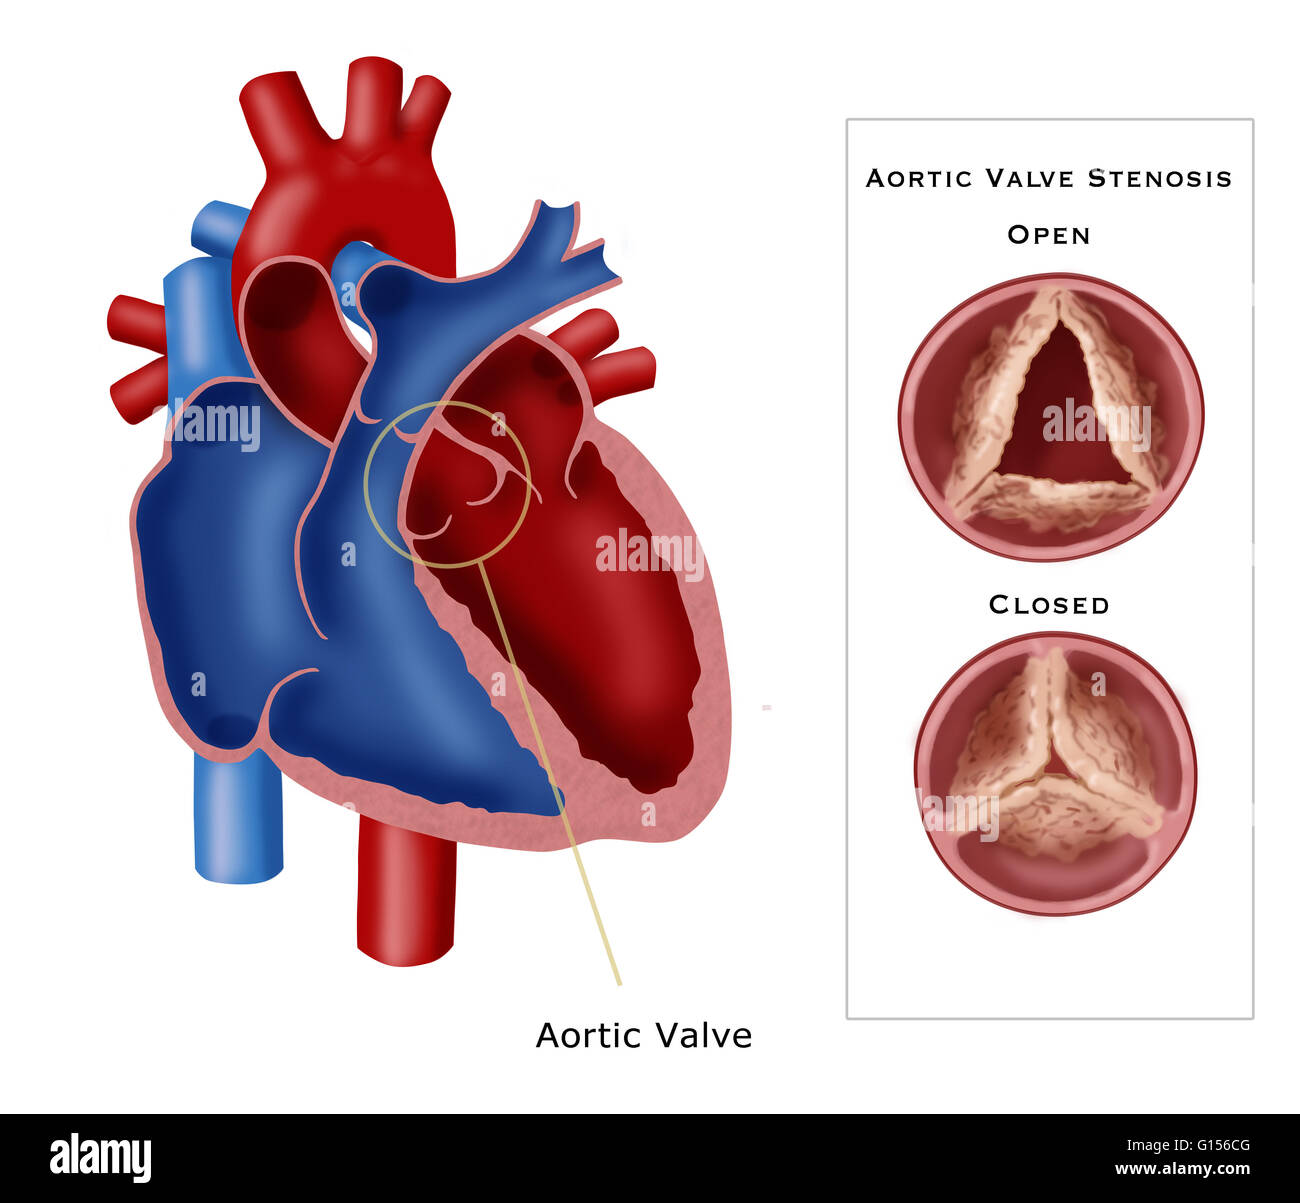 Illustration of aortic valve stenosis, a type of valvular heart ...